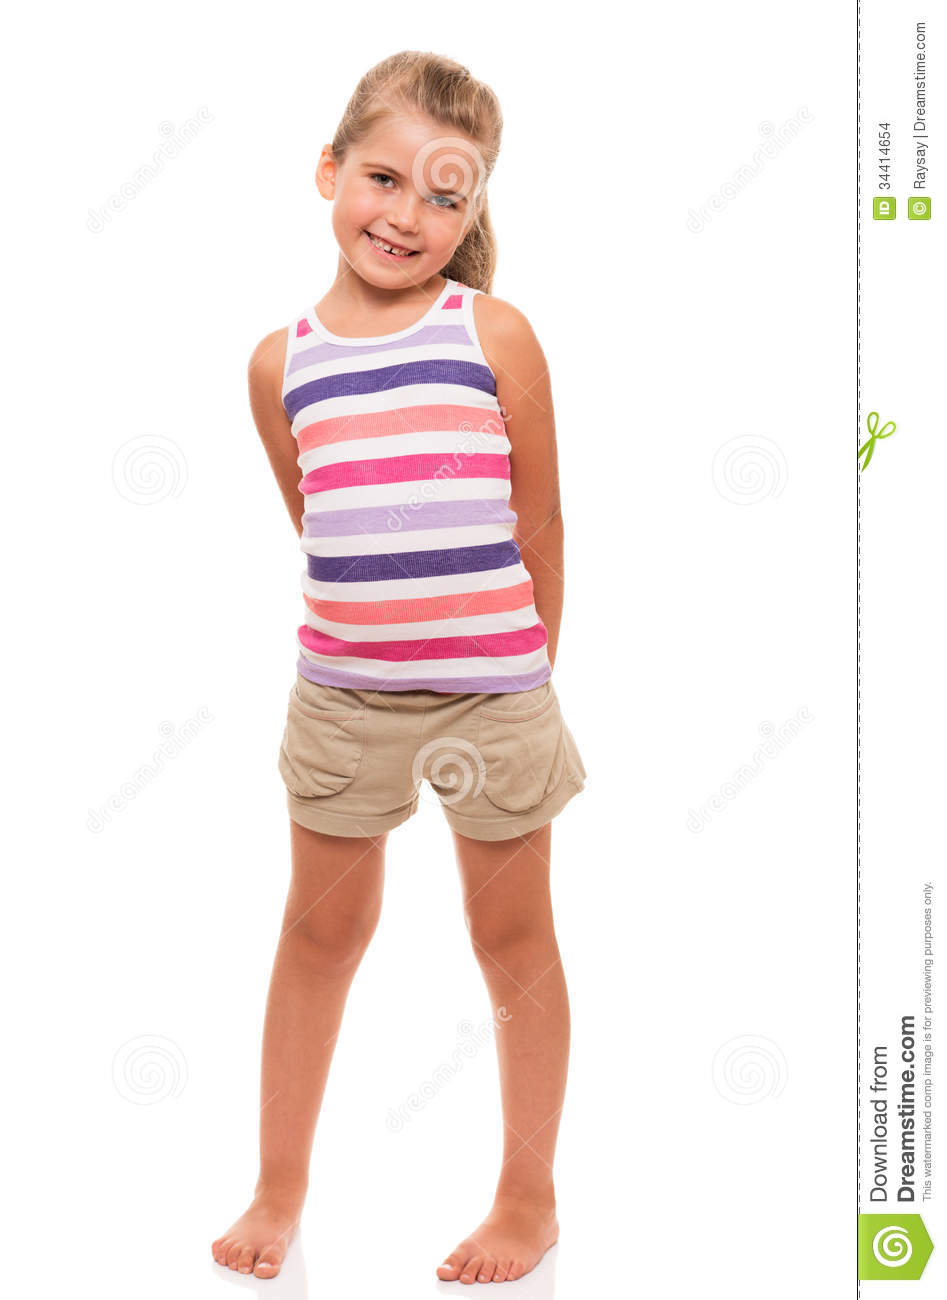 Cute Little Girl Standing On White Holding Hands Behind